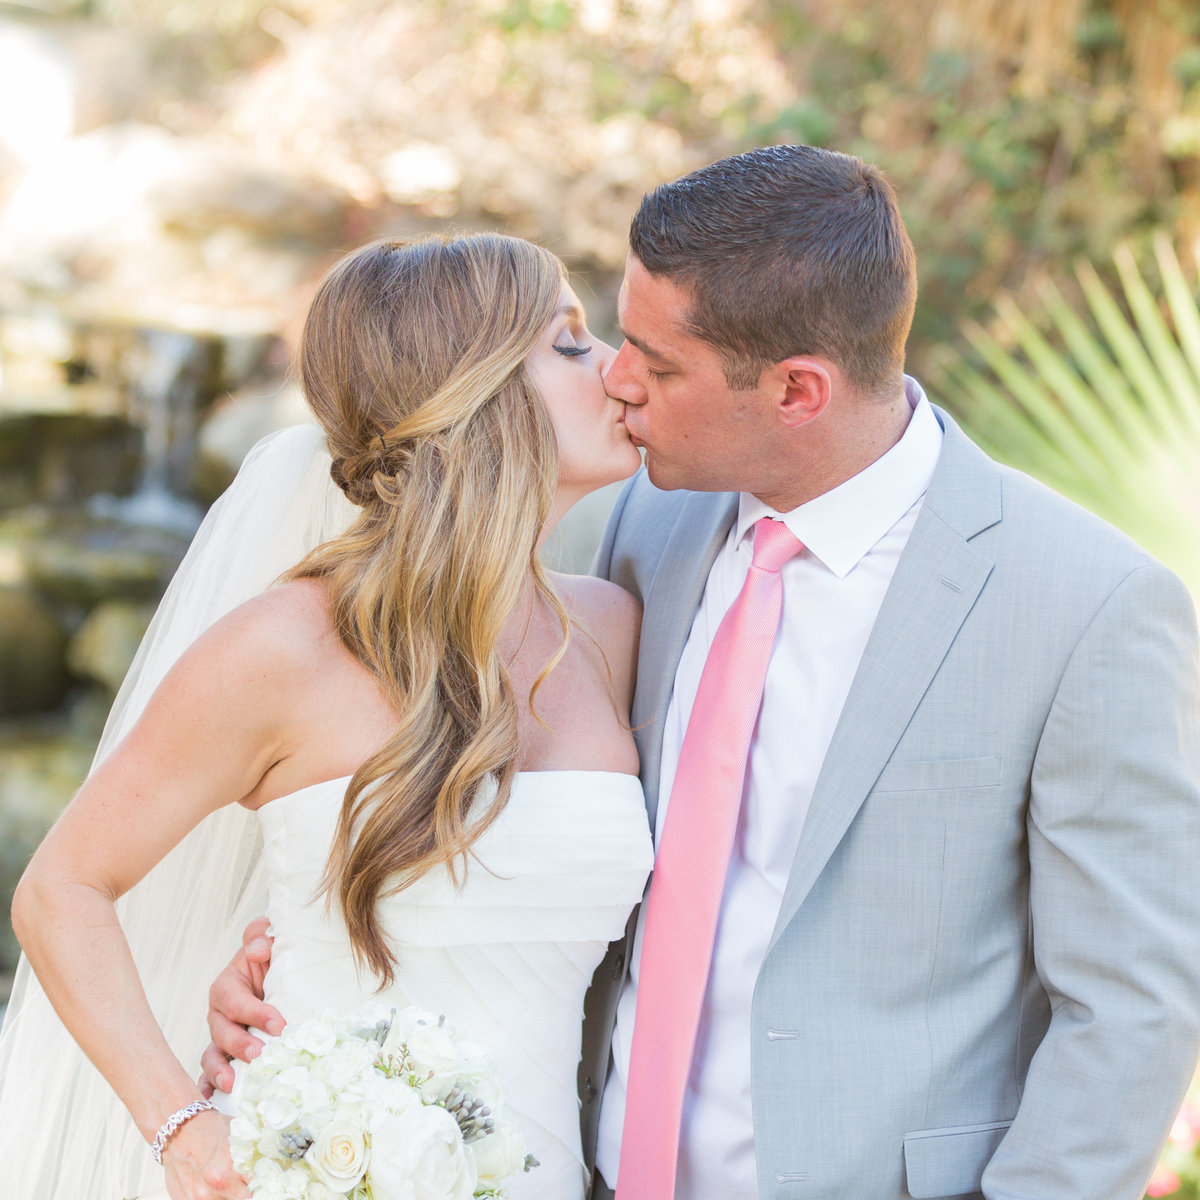 Erica Mendenhall Photography_Barn Wedding_MP_0335web